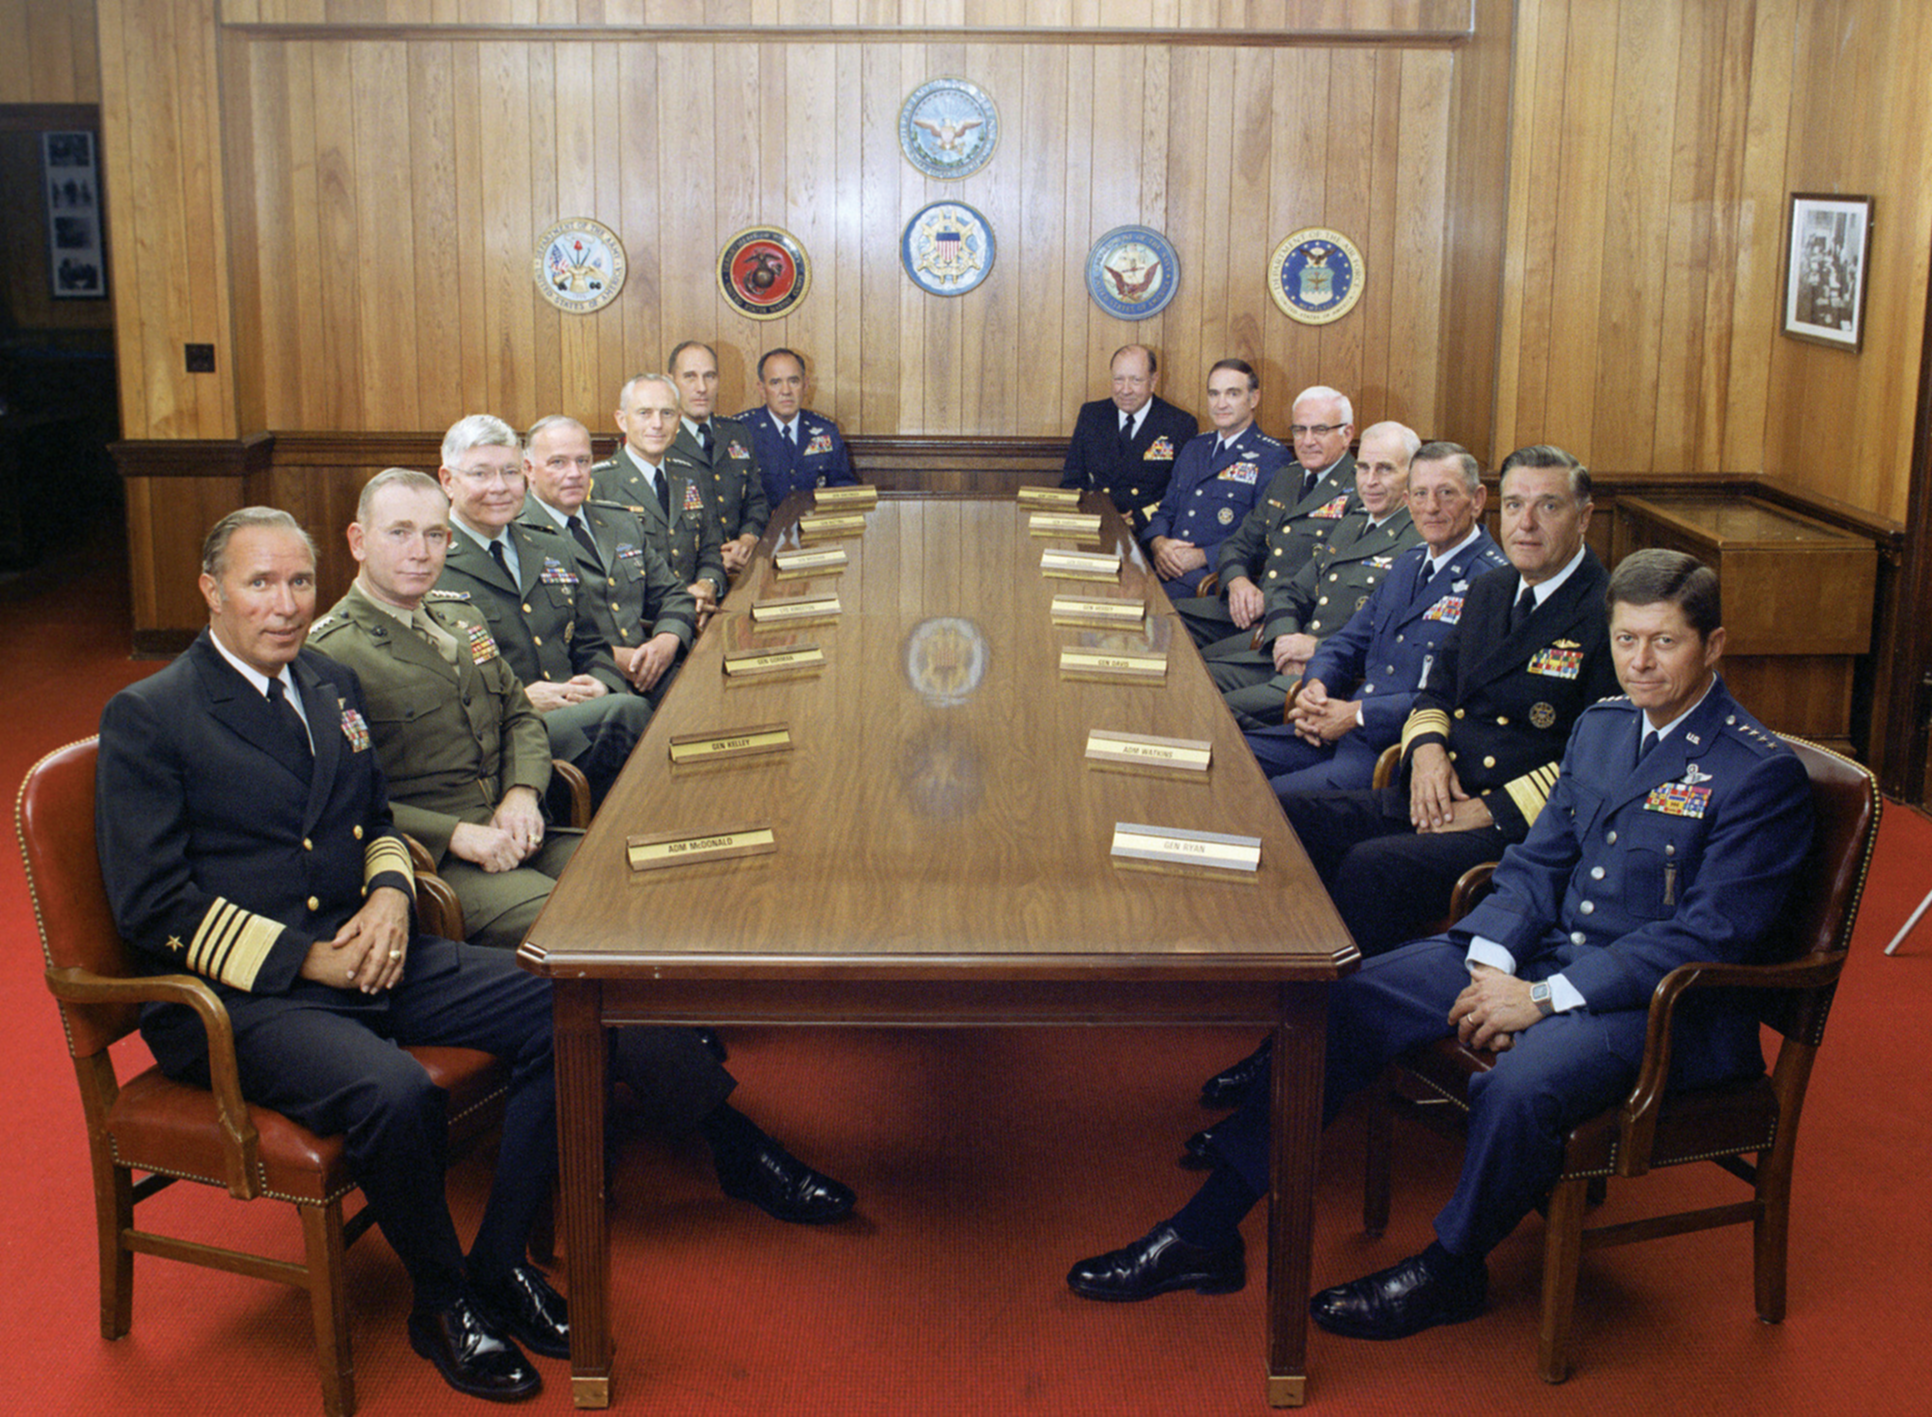 In Where to Invade Next, Michael Moore lays bare what America gets painfully wrong